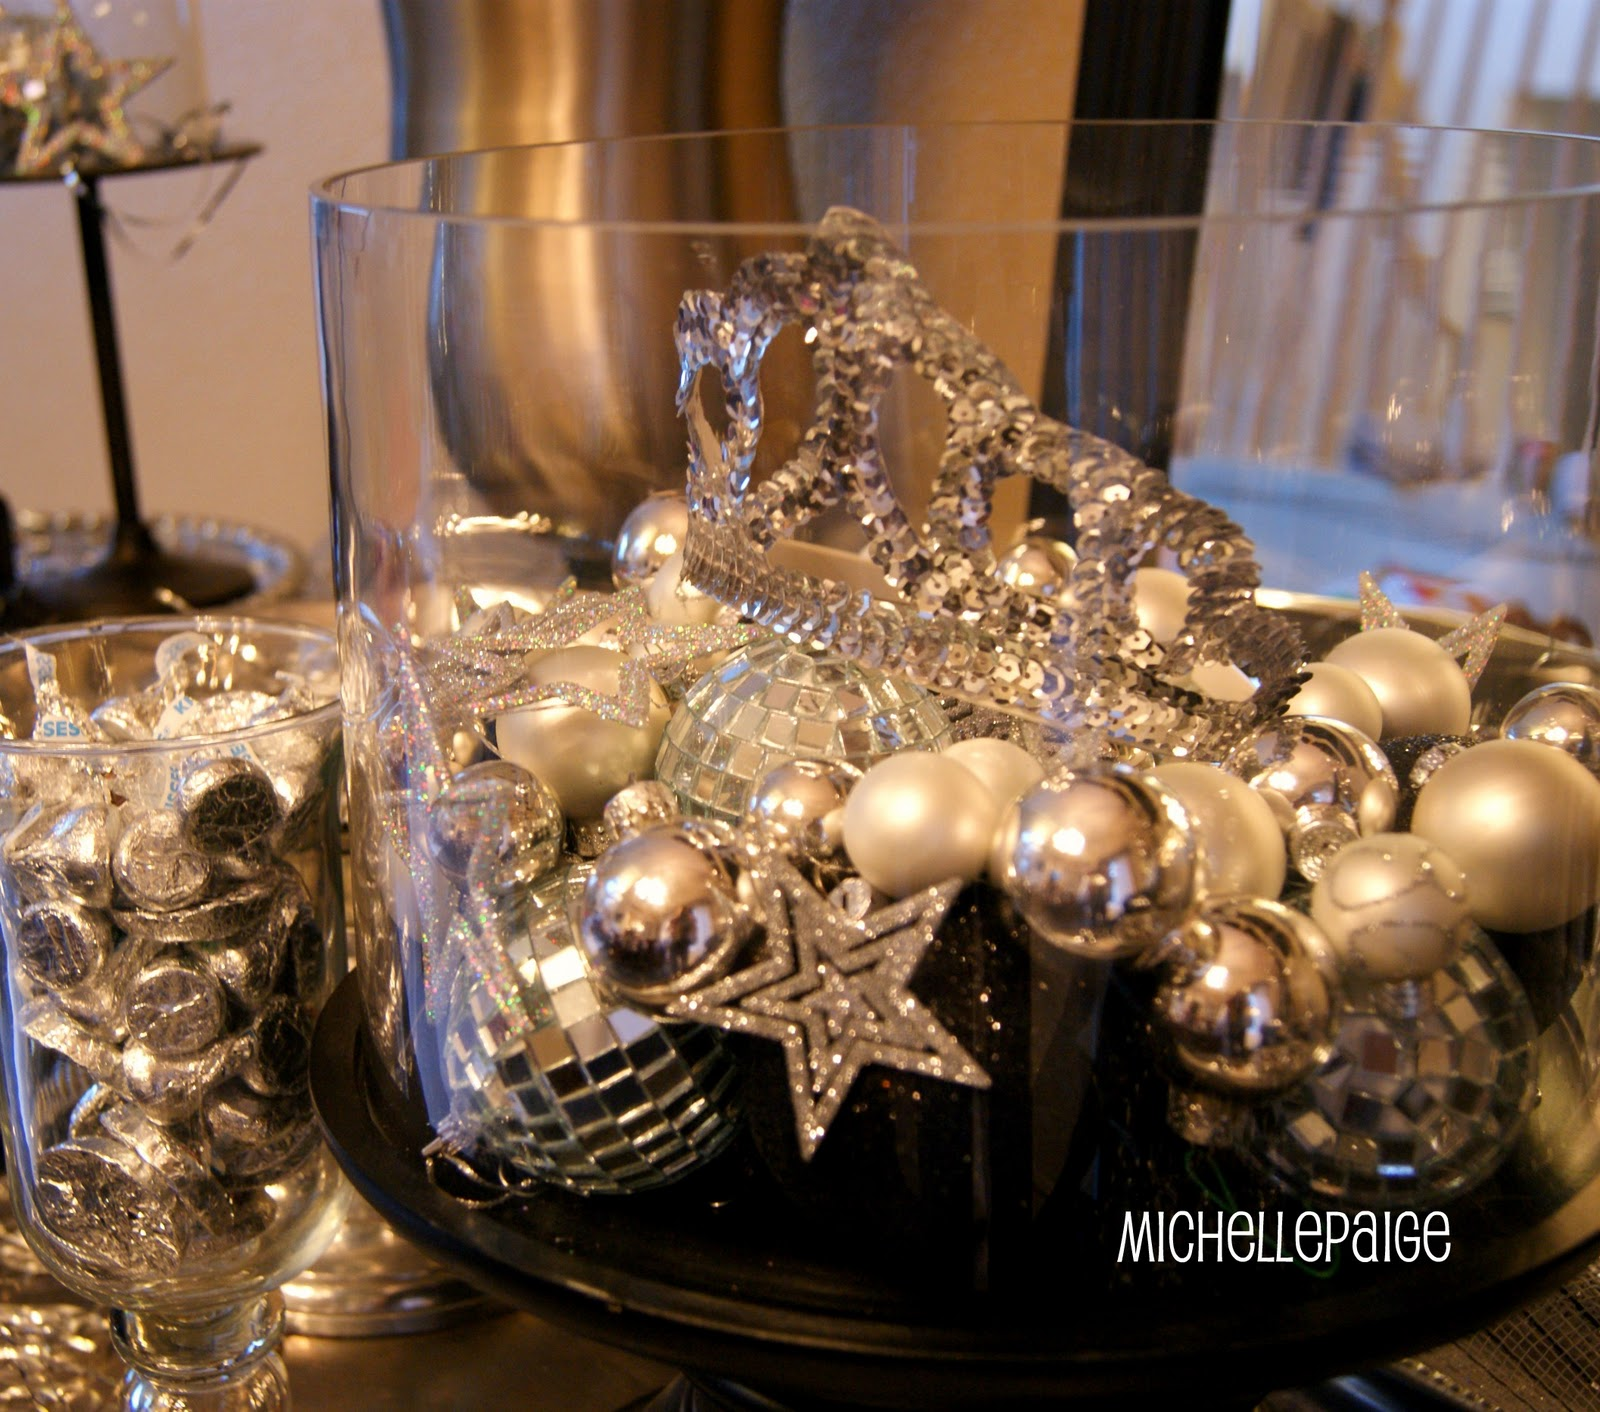 michelle paige blogs: New Year's Eve Decor